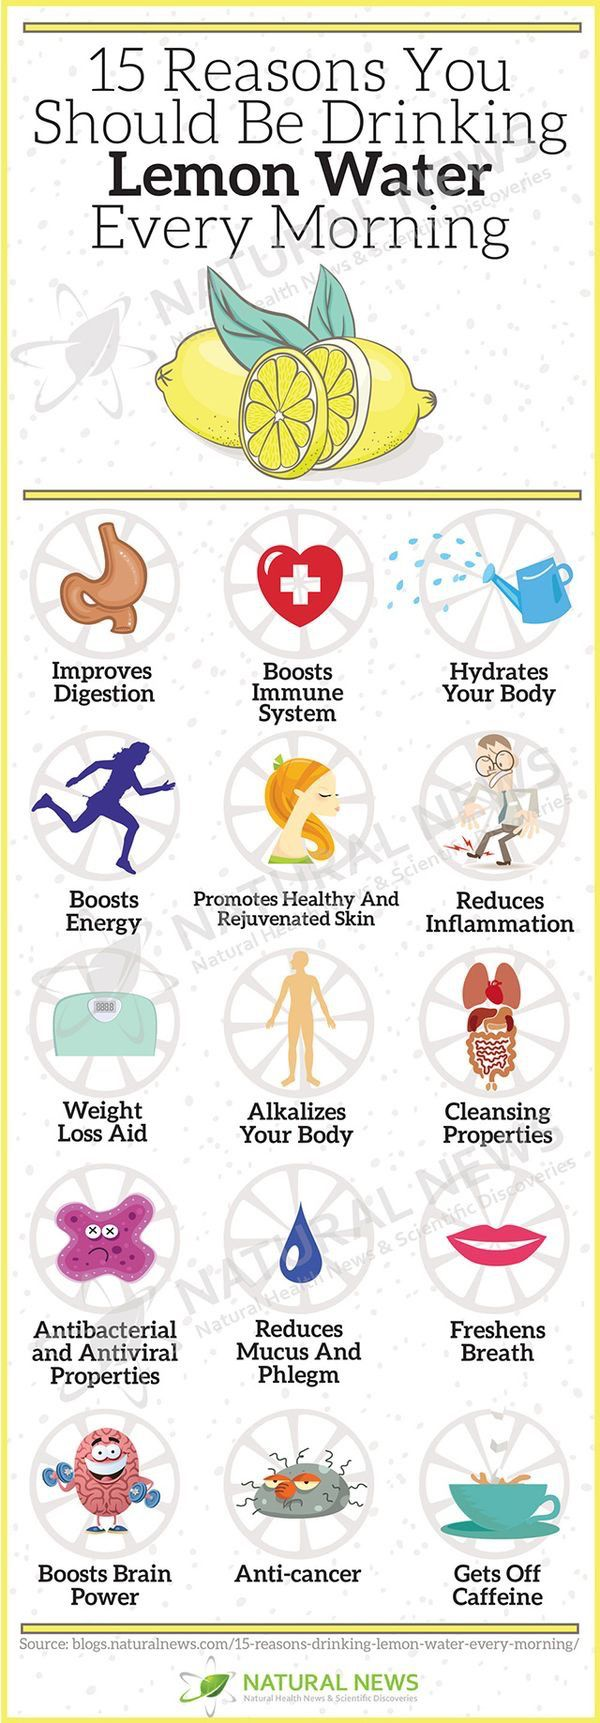 15 Reasons to Drink Lemon Water in a.m.  Just be sure to wait at least 30 minutes before consuming anything else.  I use 1/2 lemon squeezed into 8 oz. Warm water.